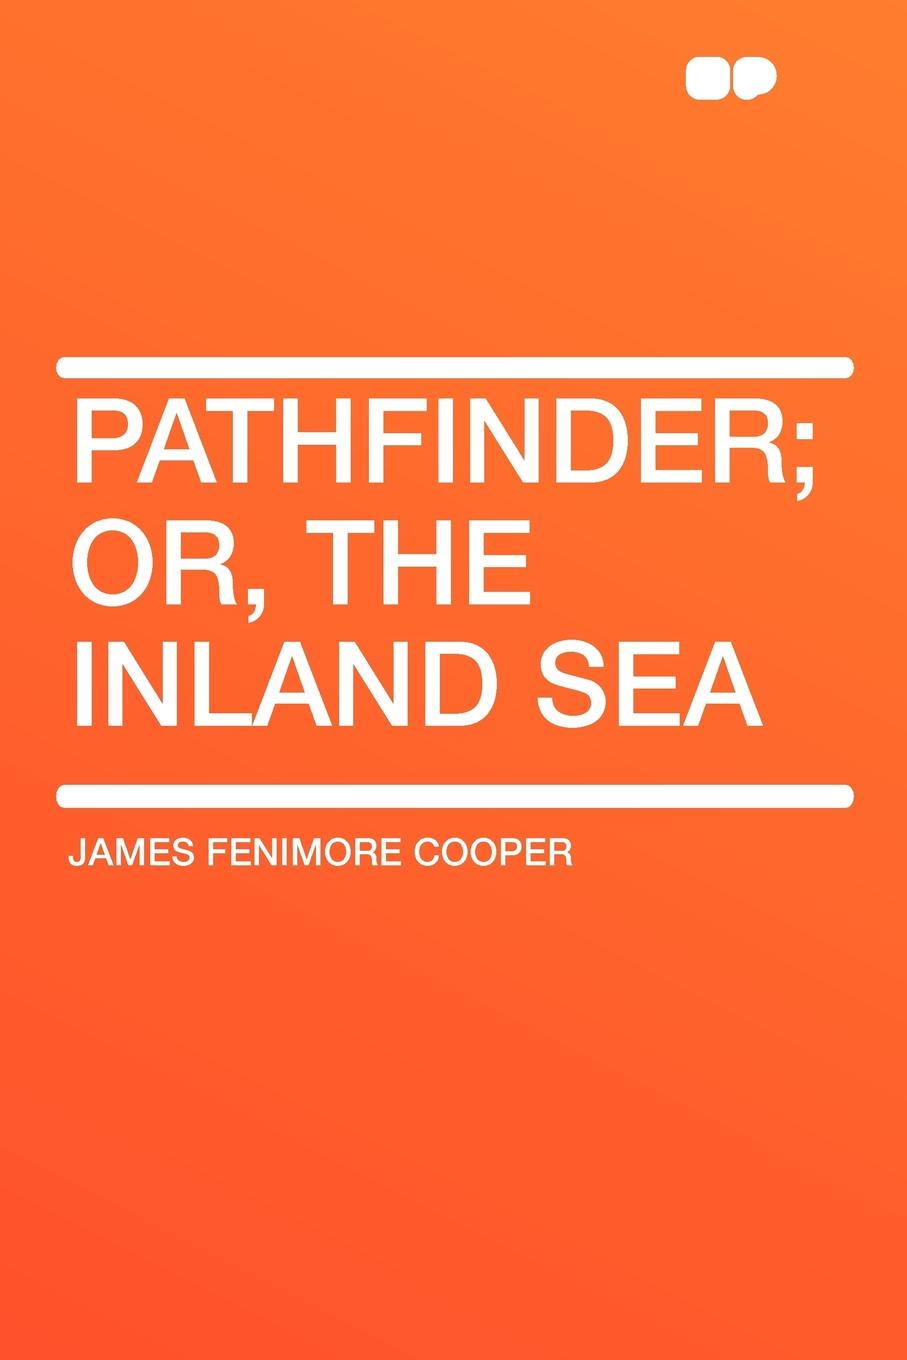 James Fenimore Cooper Pathfinder; or, the inland sea